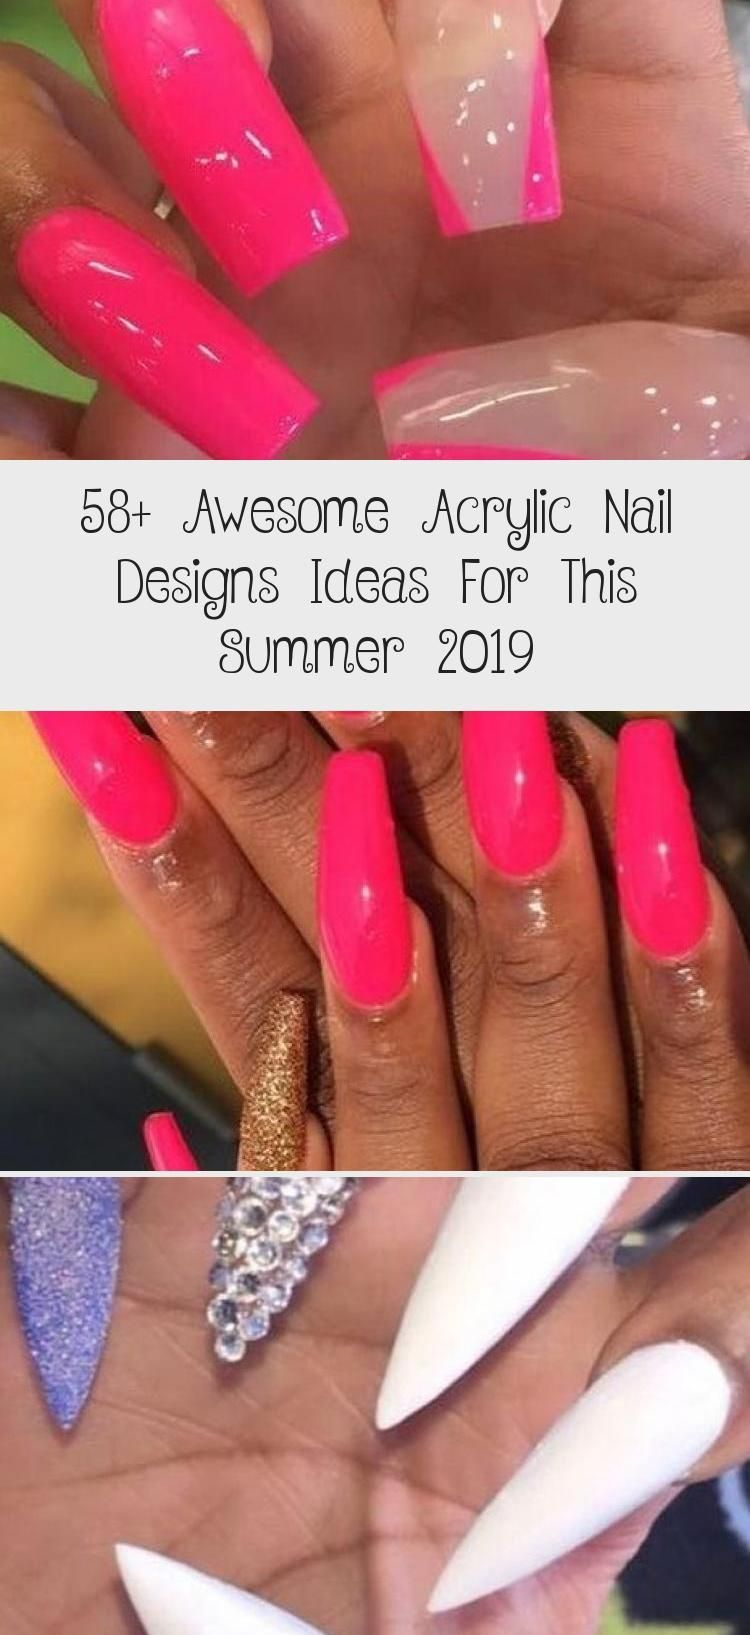 58+ Awesome Acrylic Nail Designs Ideas For This Summer 2019 - Nail Art Desing 58+ Awesome Acrylic Nail Designs Ideas...#acrylic #art #awesome #designs #desing #ideas #nail #summer